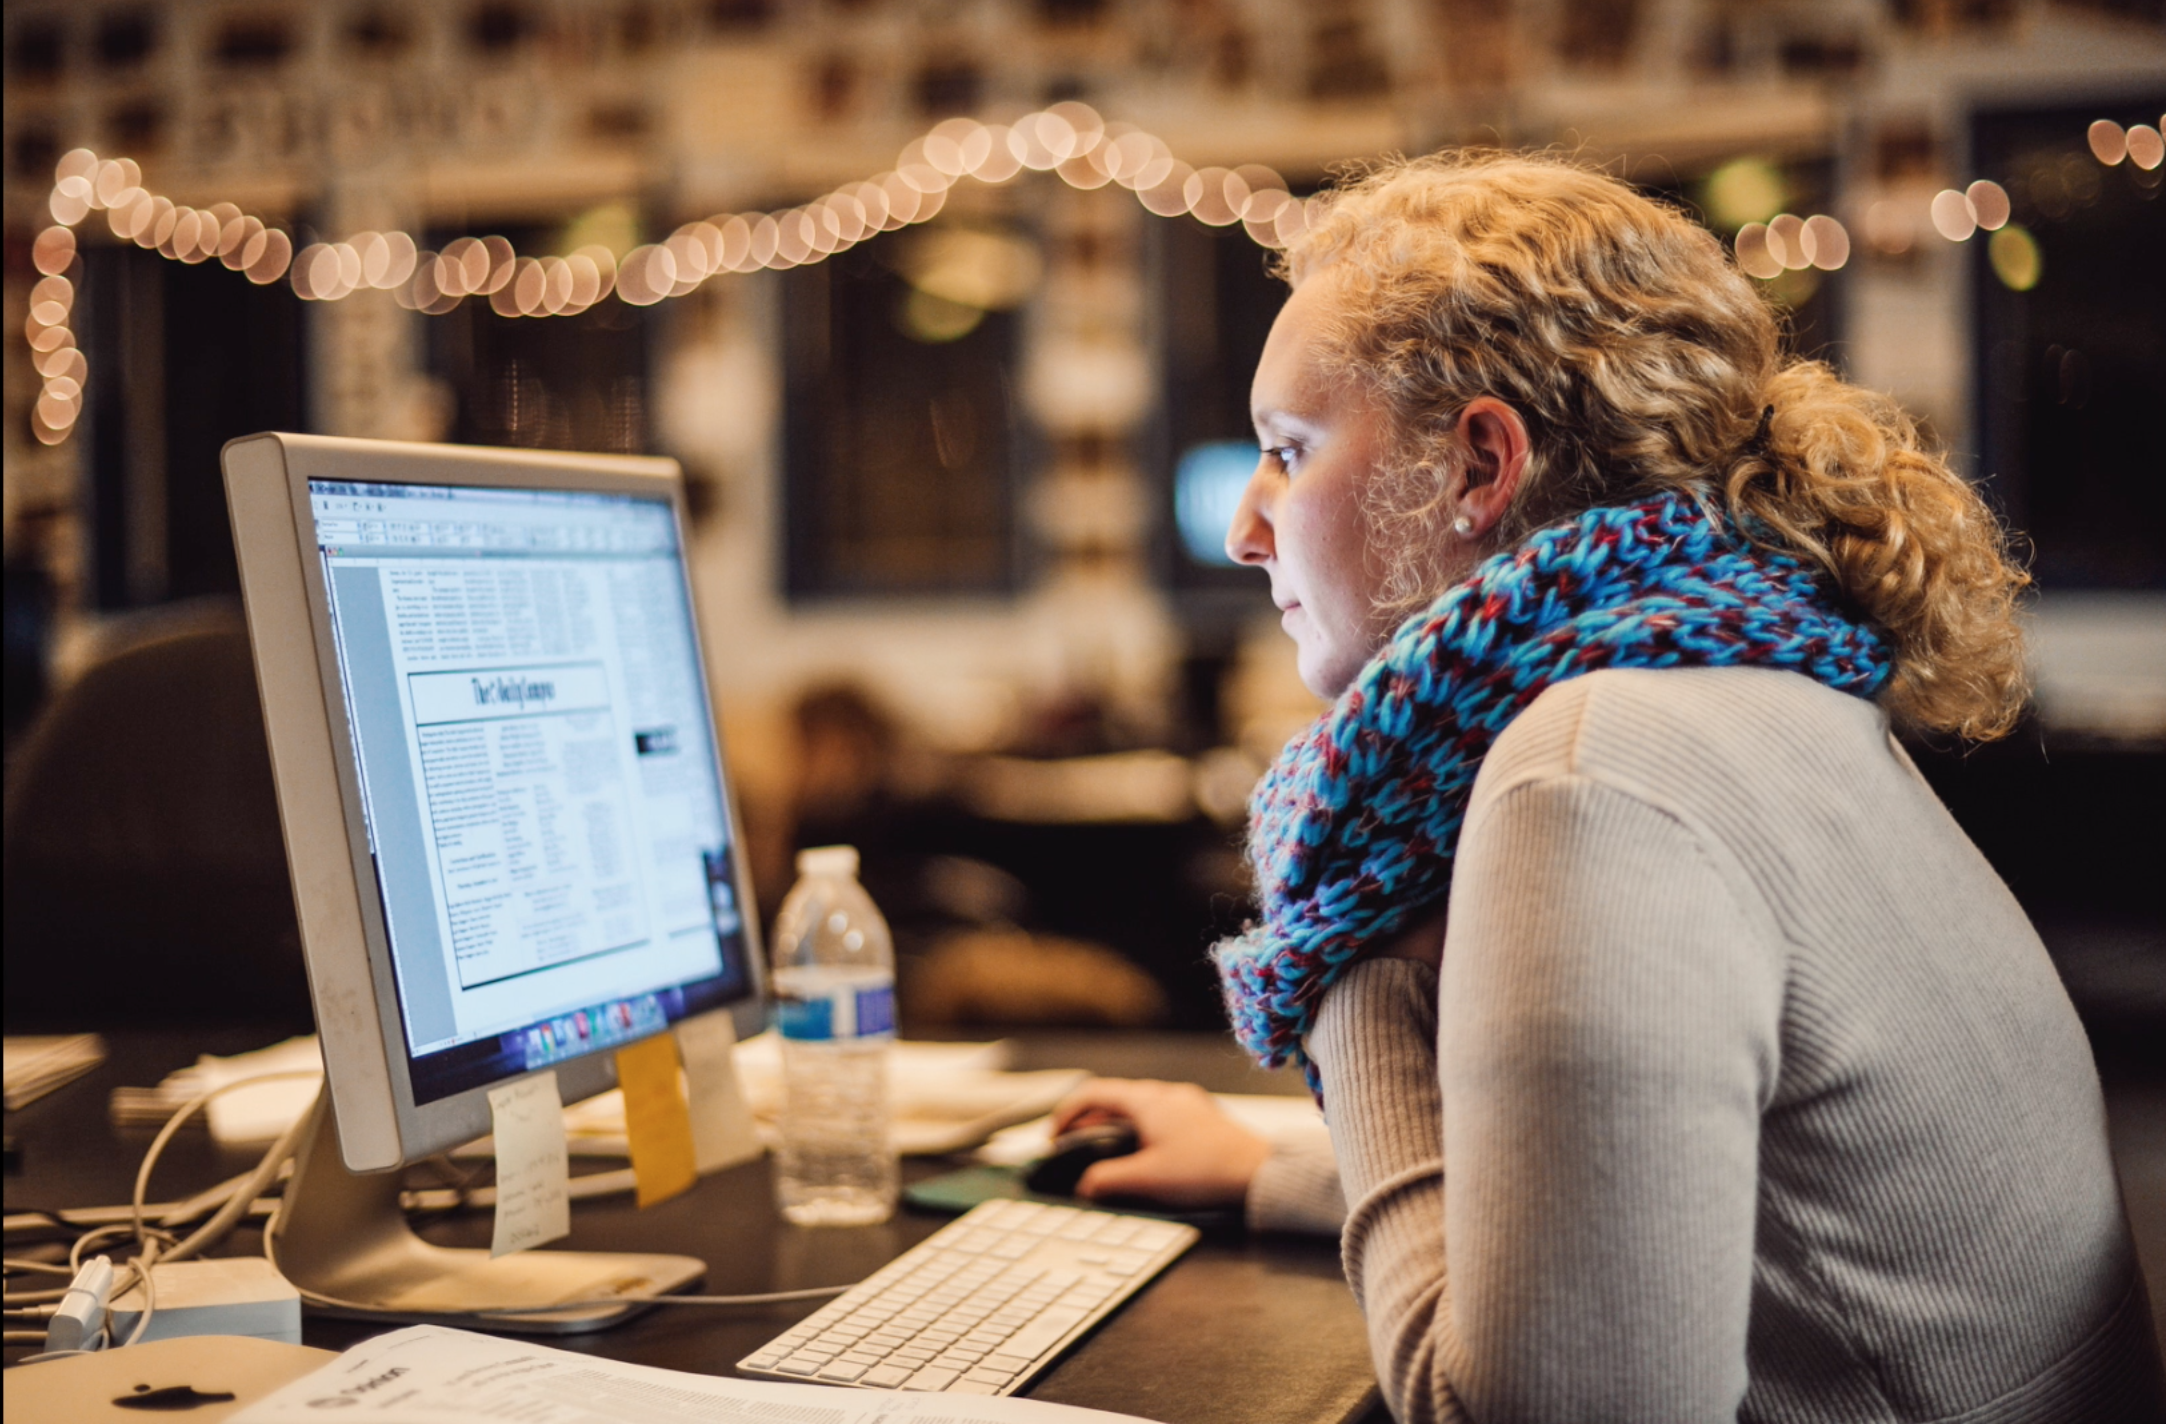 Bailey Wright working at The Daily Campus in 2016. (Photo by Jason Jiang)